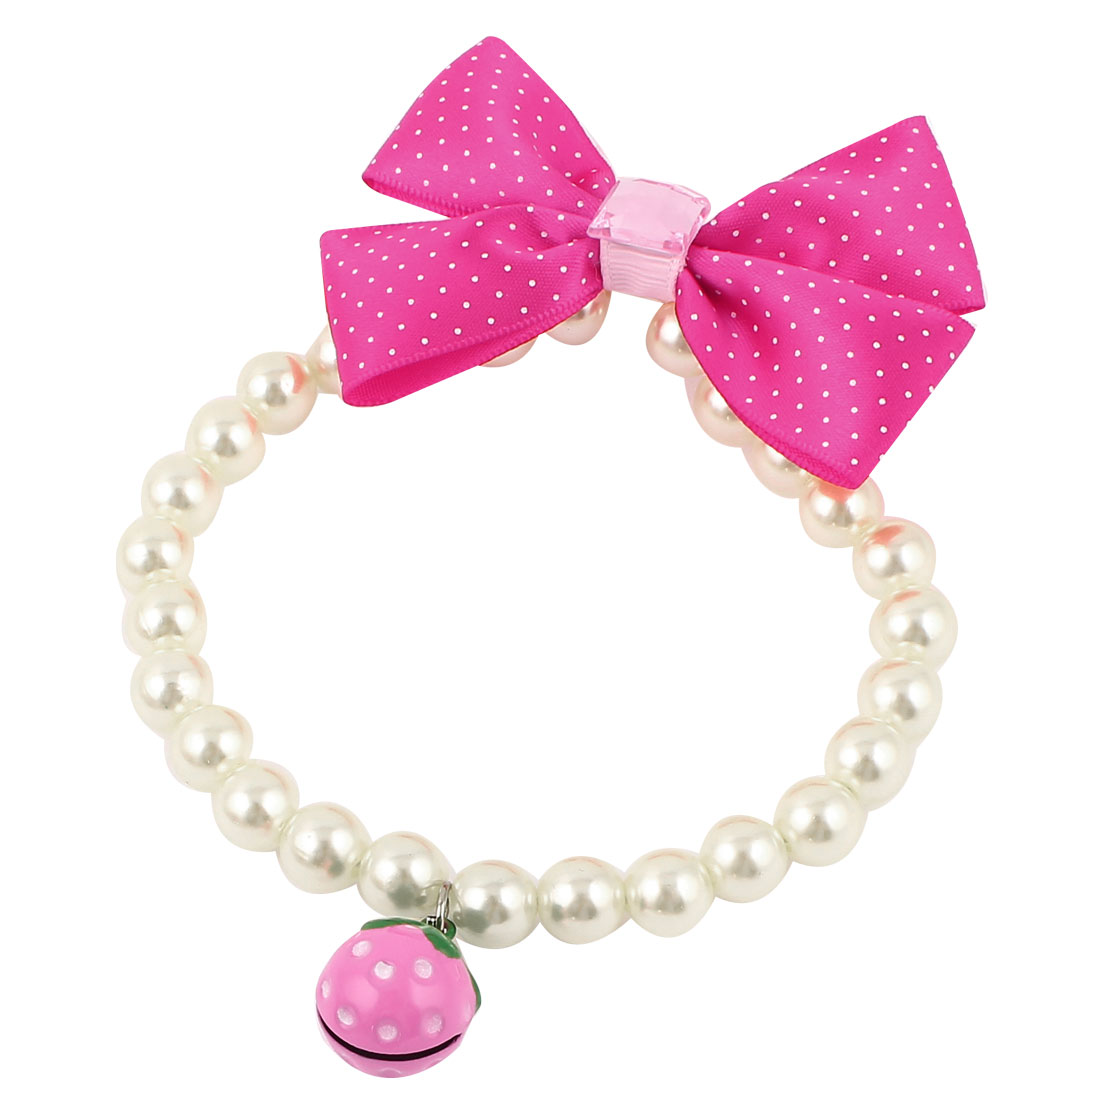 Metal Bell Pendant Bowknot Accent Pet Dog Plastic Beads Pearls Collar Necklace White Fuchsia S